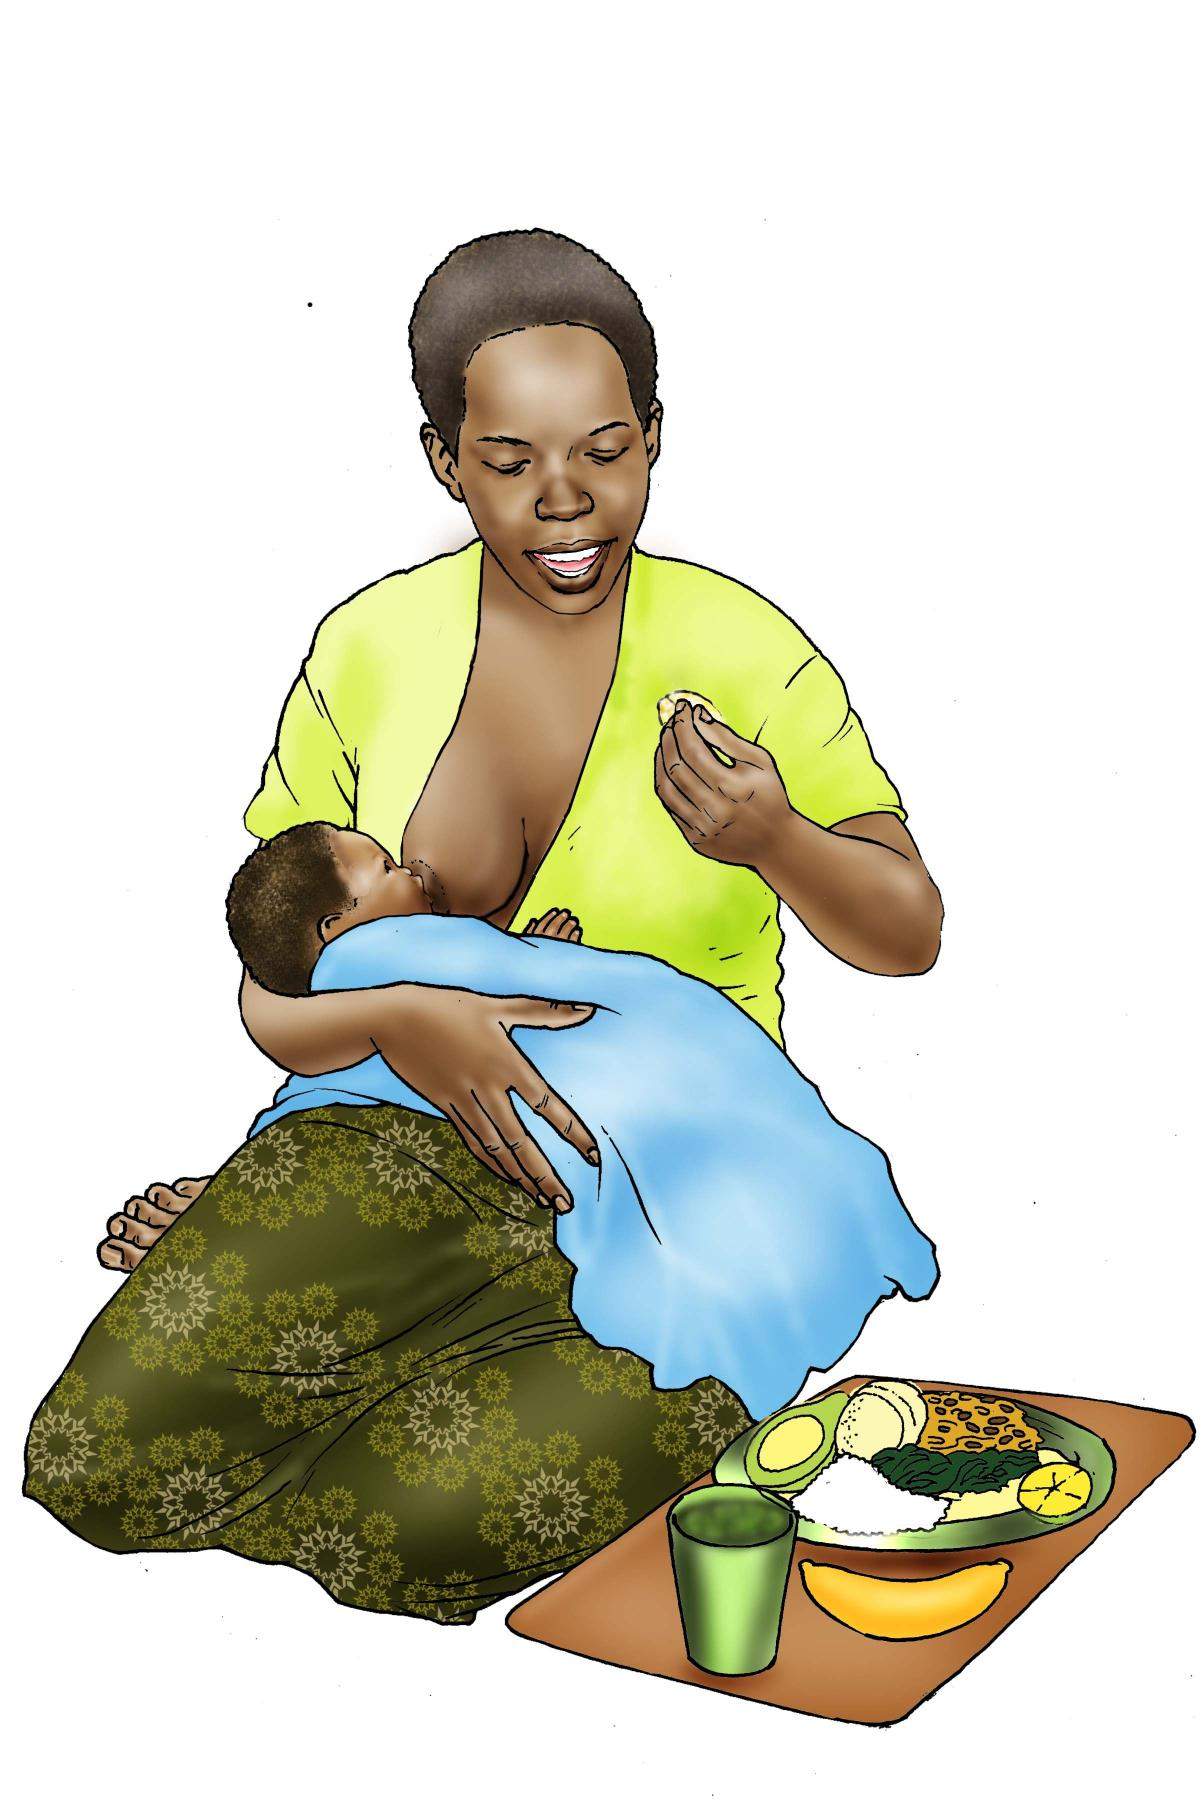 Maternal nutrition - Breastfeeding mother eating - 03 - Nigeria